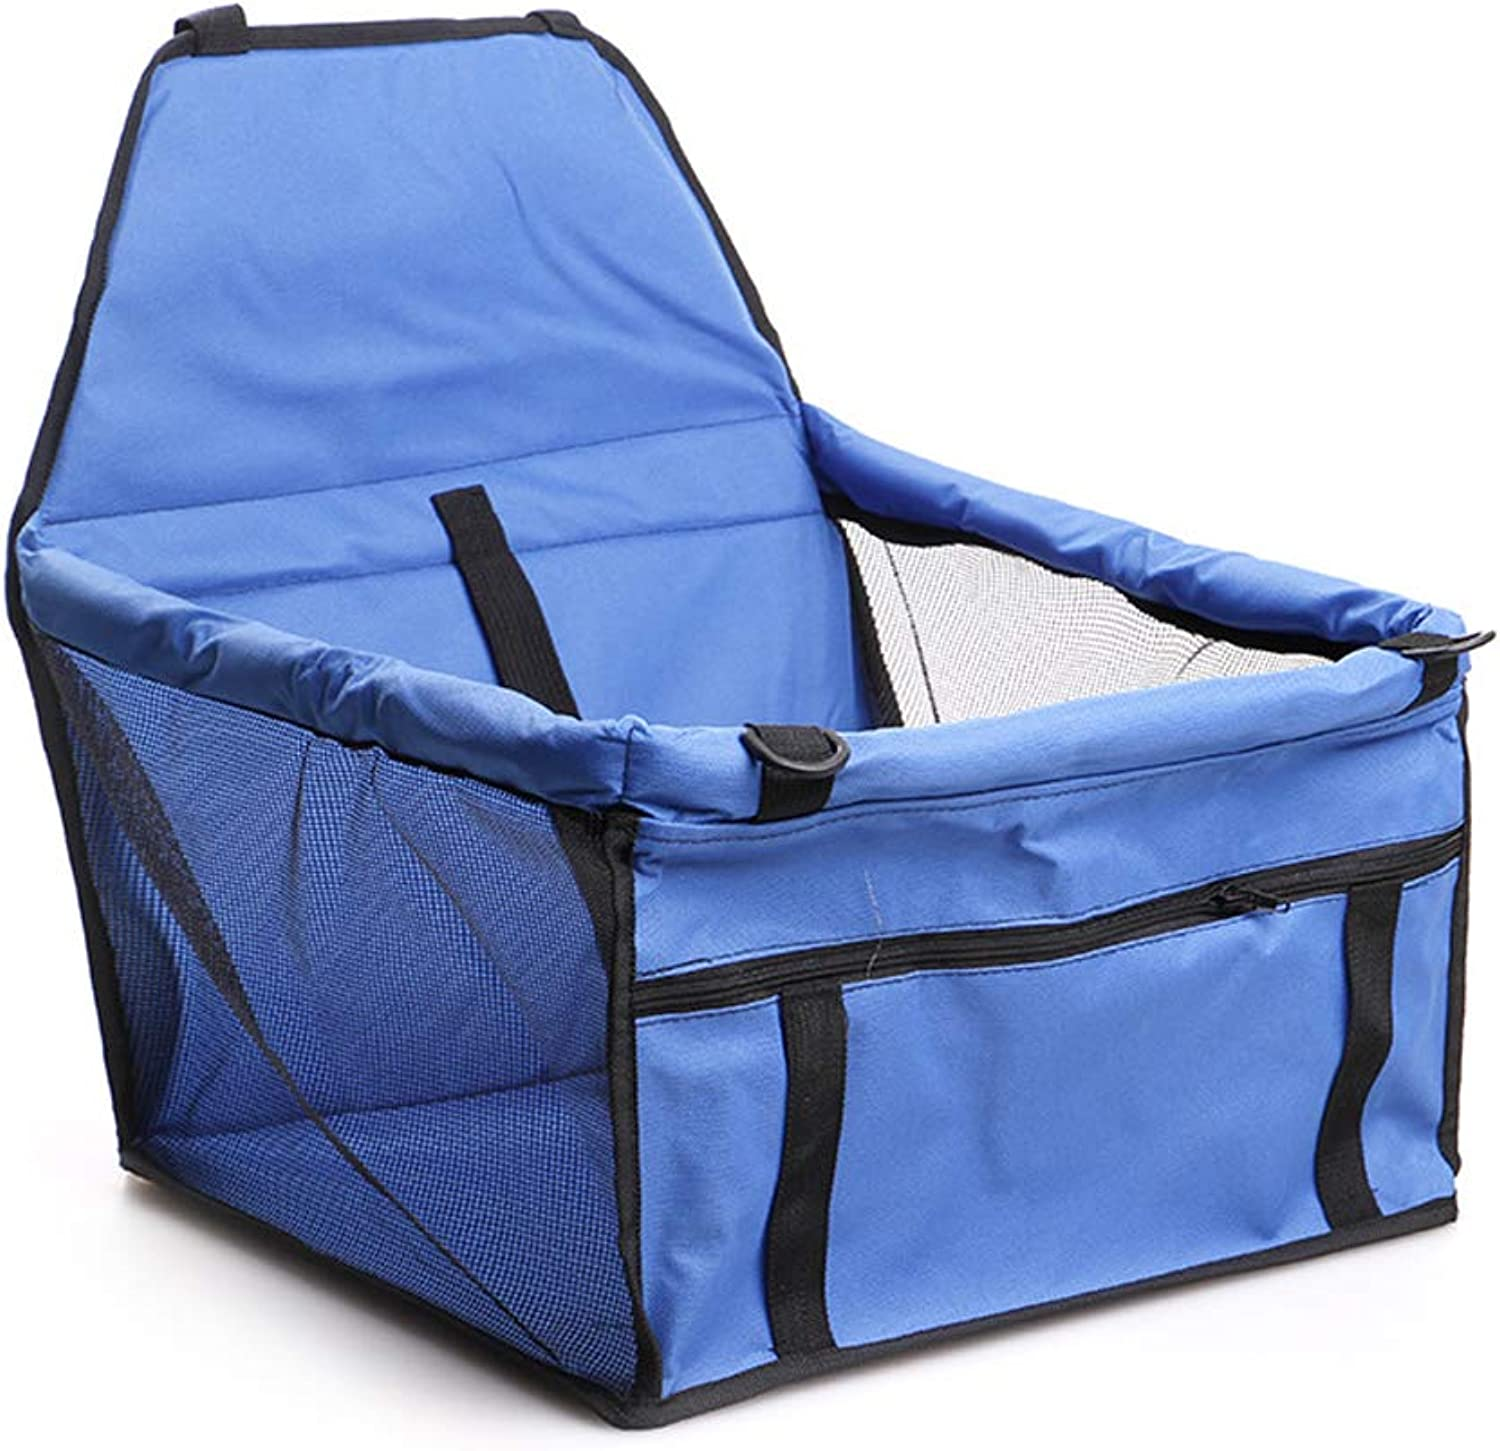 Easy Folding Dog Cat Puppy Pet Car Booster Seat Travel Carrier Bag Cage Deluxe Portable with Clipon Safety Leash (bluee)